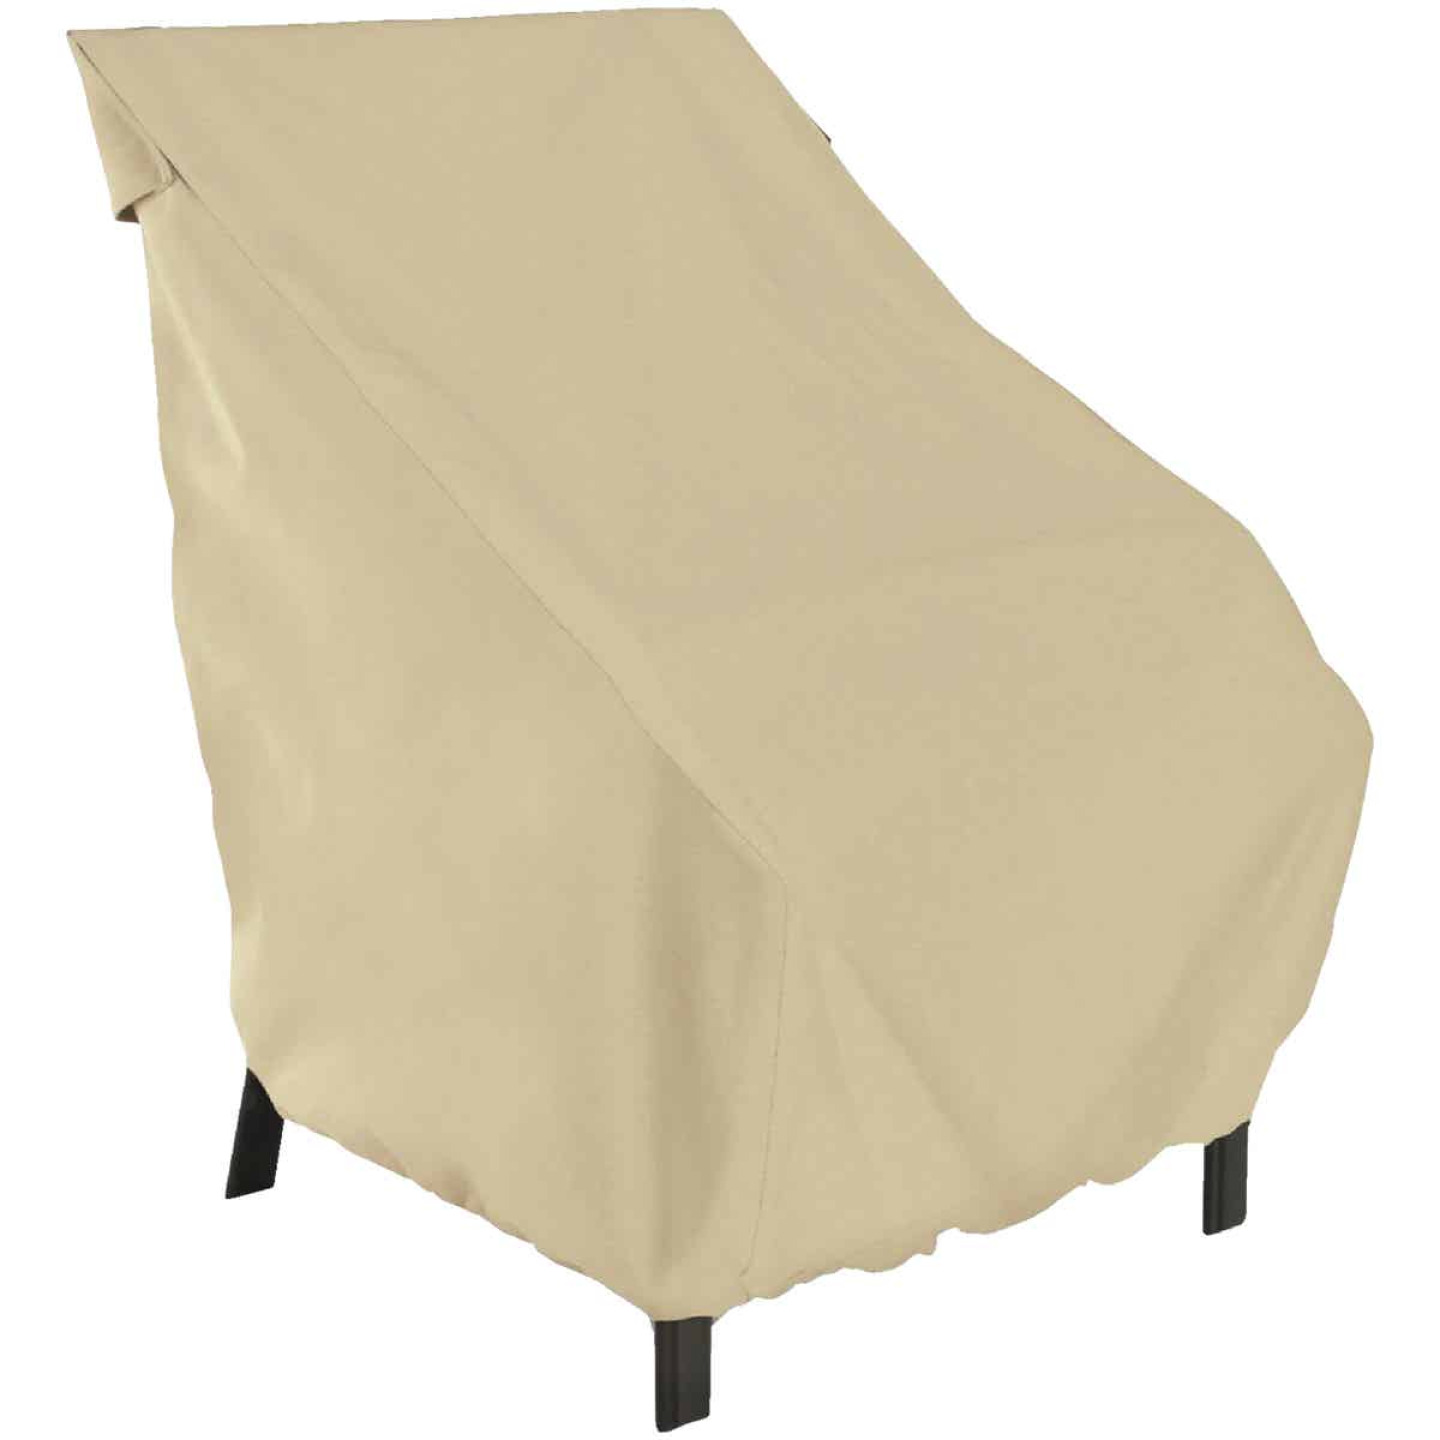 Classic Accessories 26 In. W. x 34 In. H. x 25 In. L. Tan Polyester/PVC Chair Cover Image 1